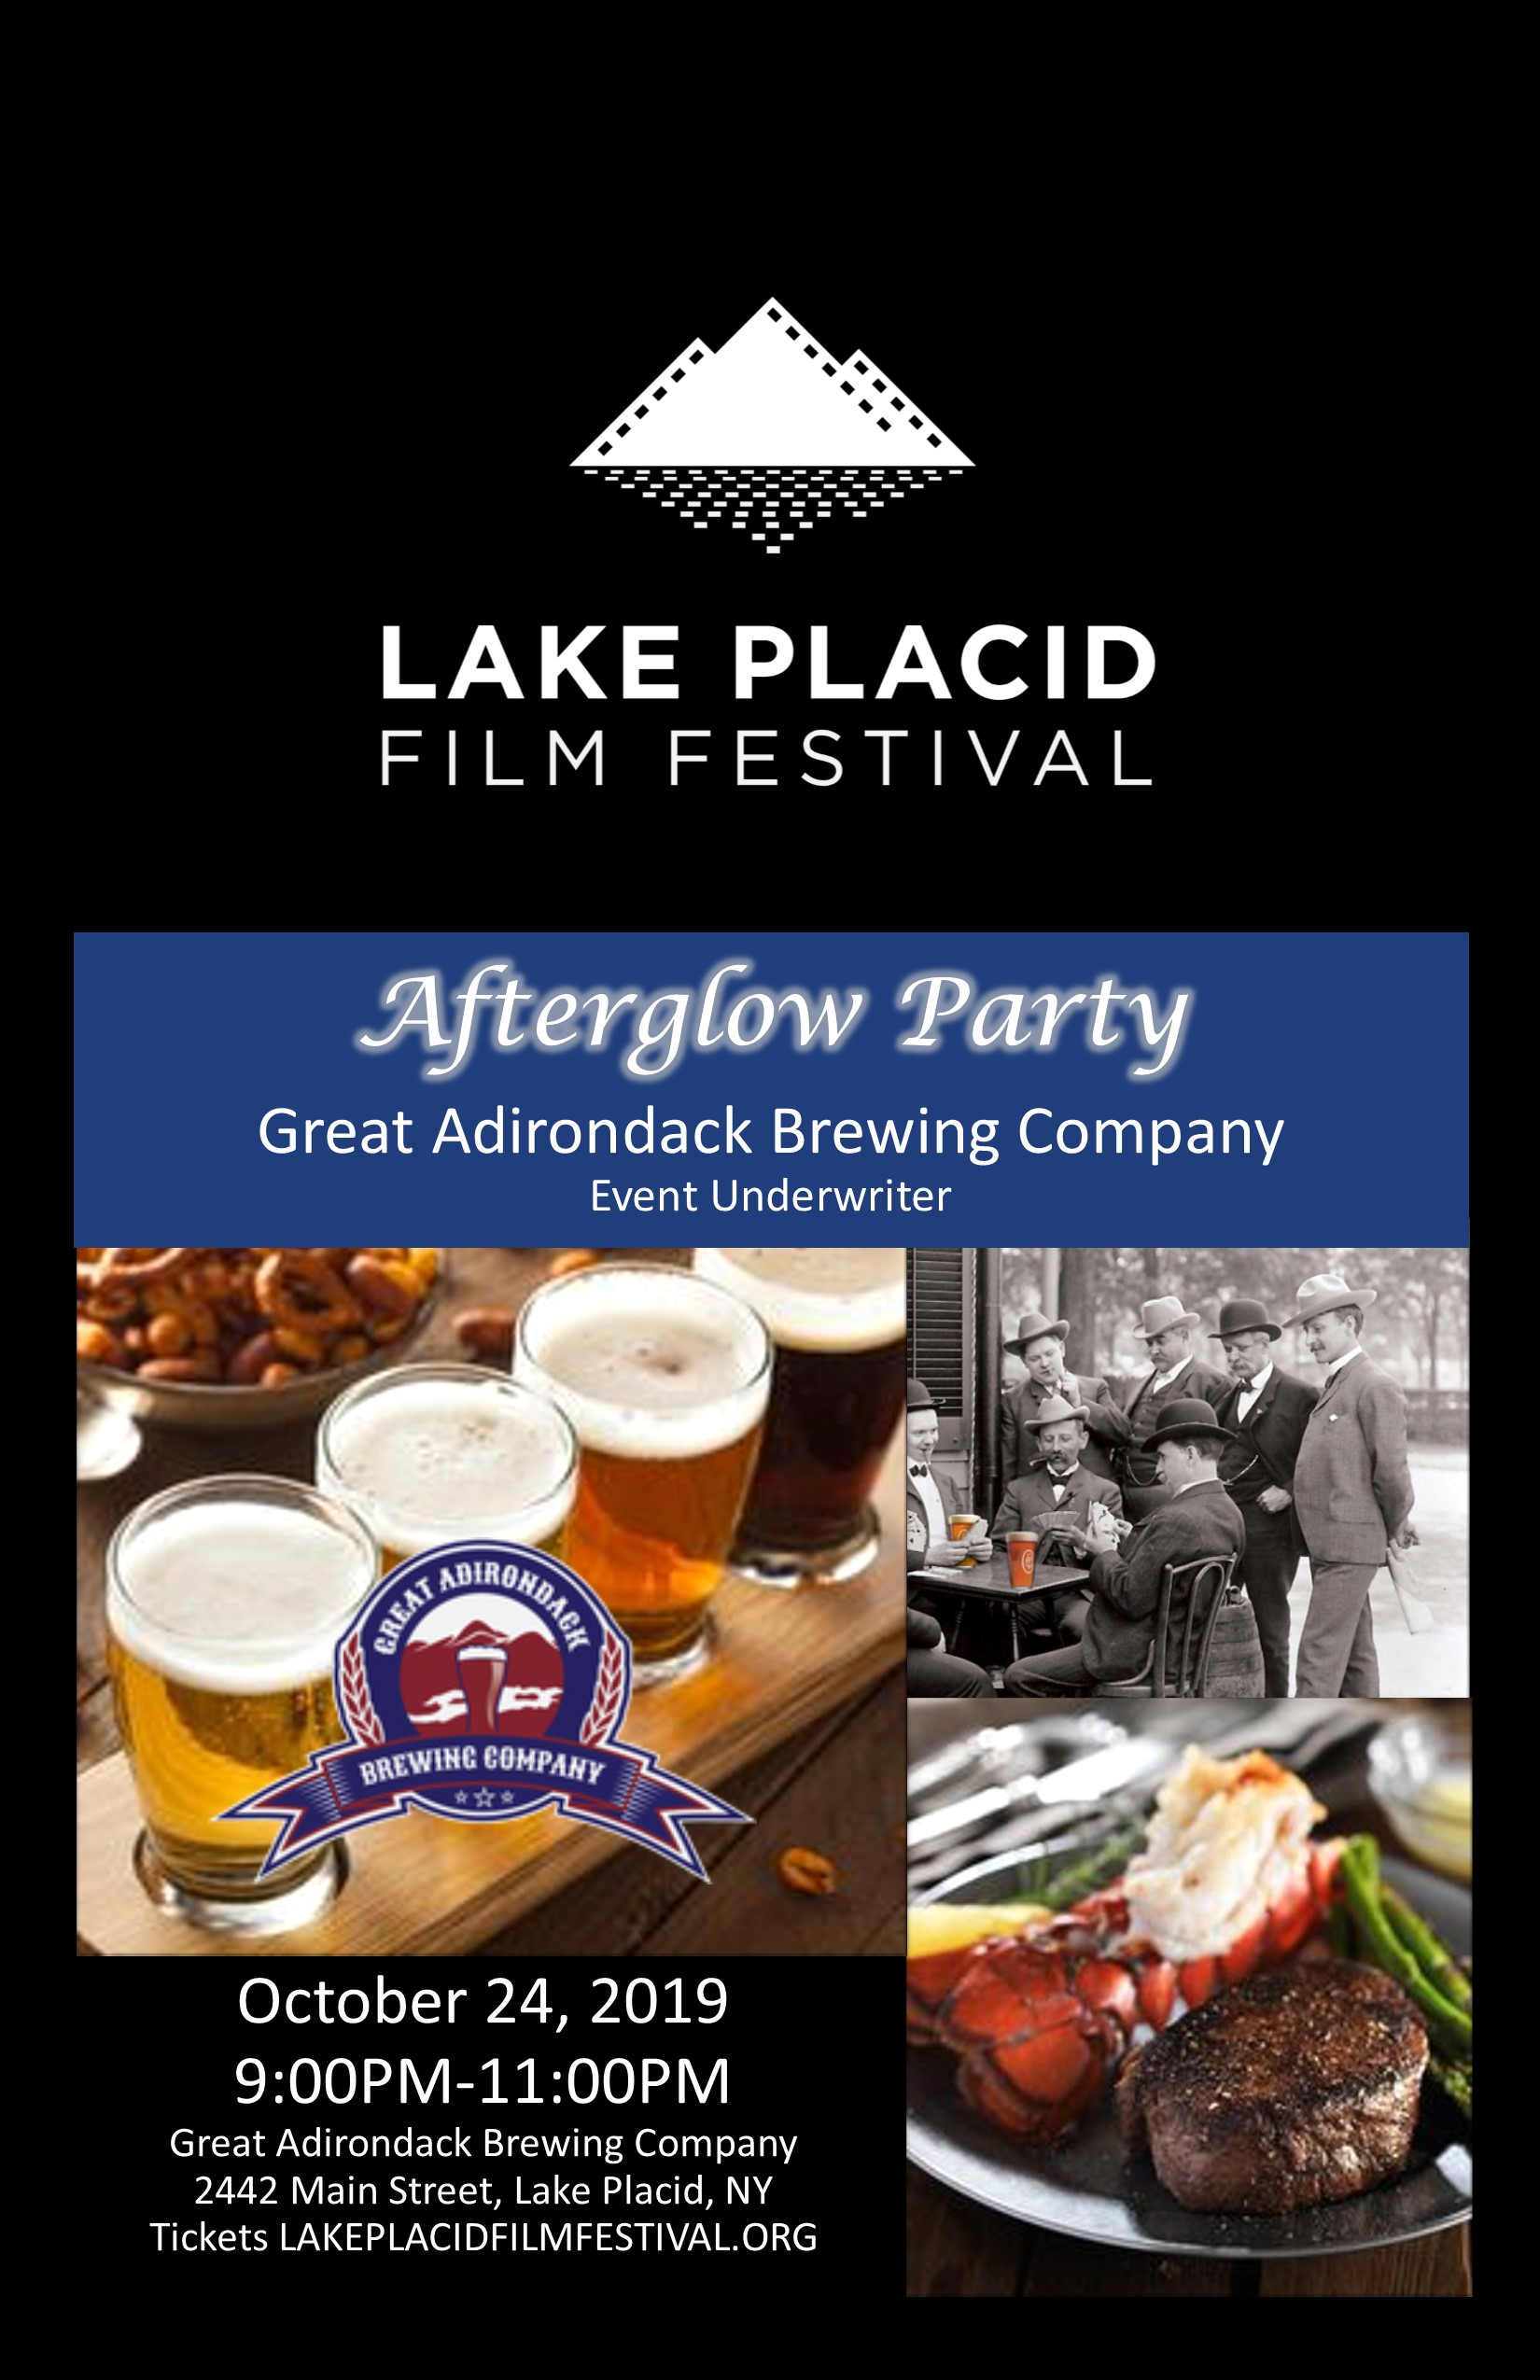 Afterglow Party GABC 10-24-19 Poster 11x17 Final 5-22-19.jpg